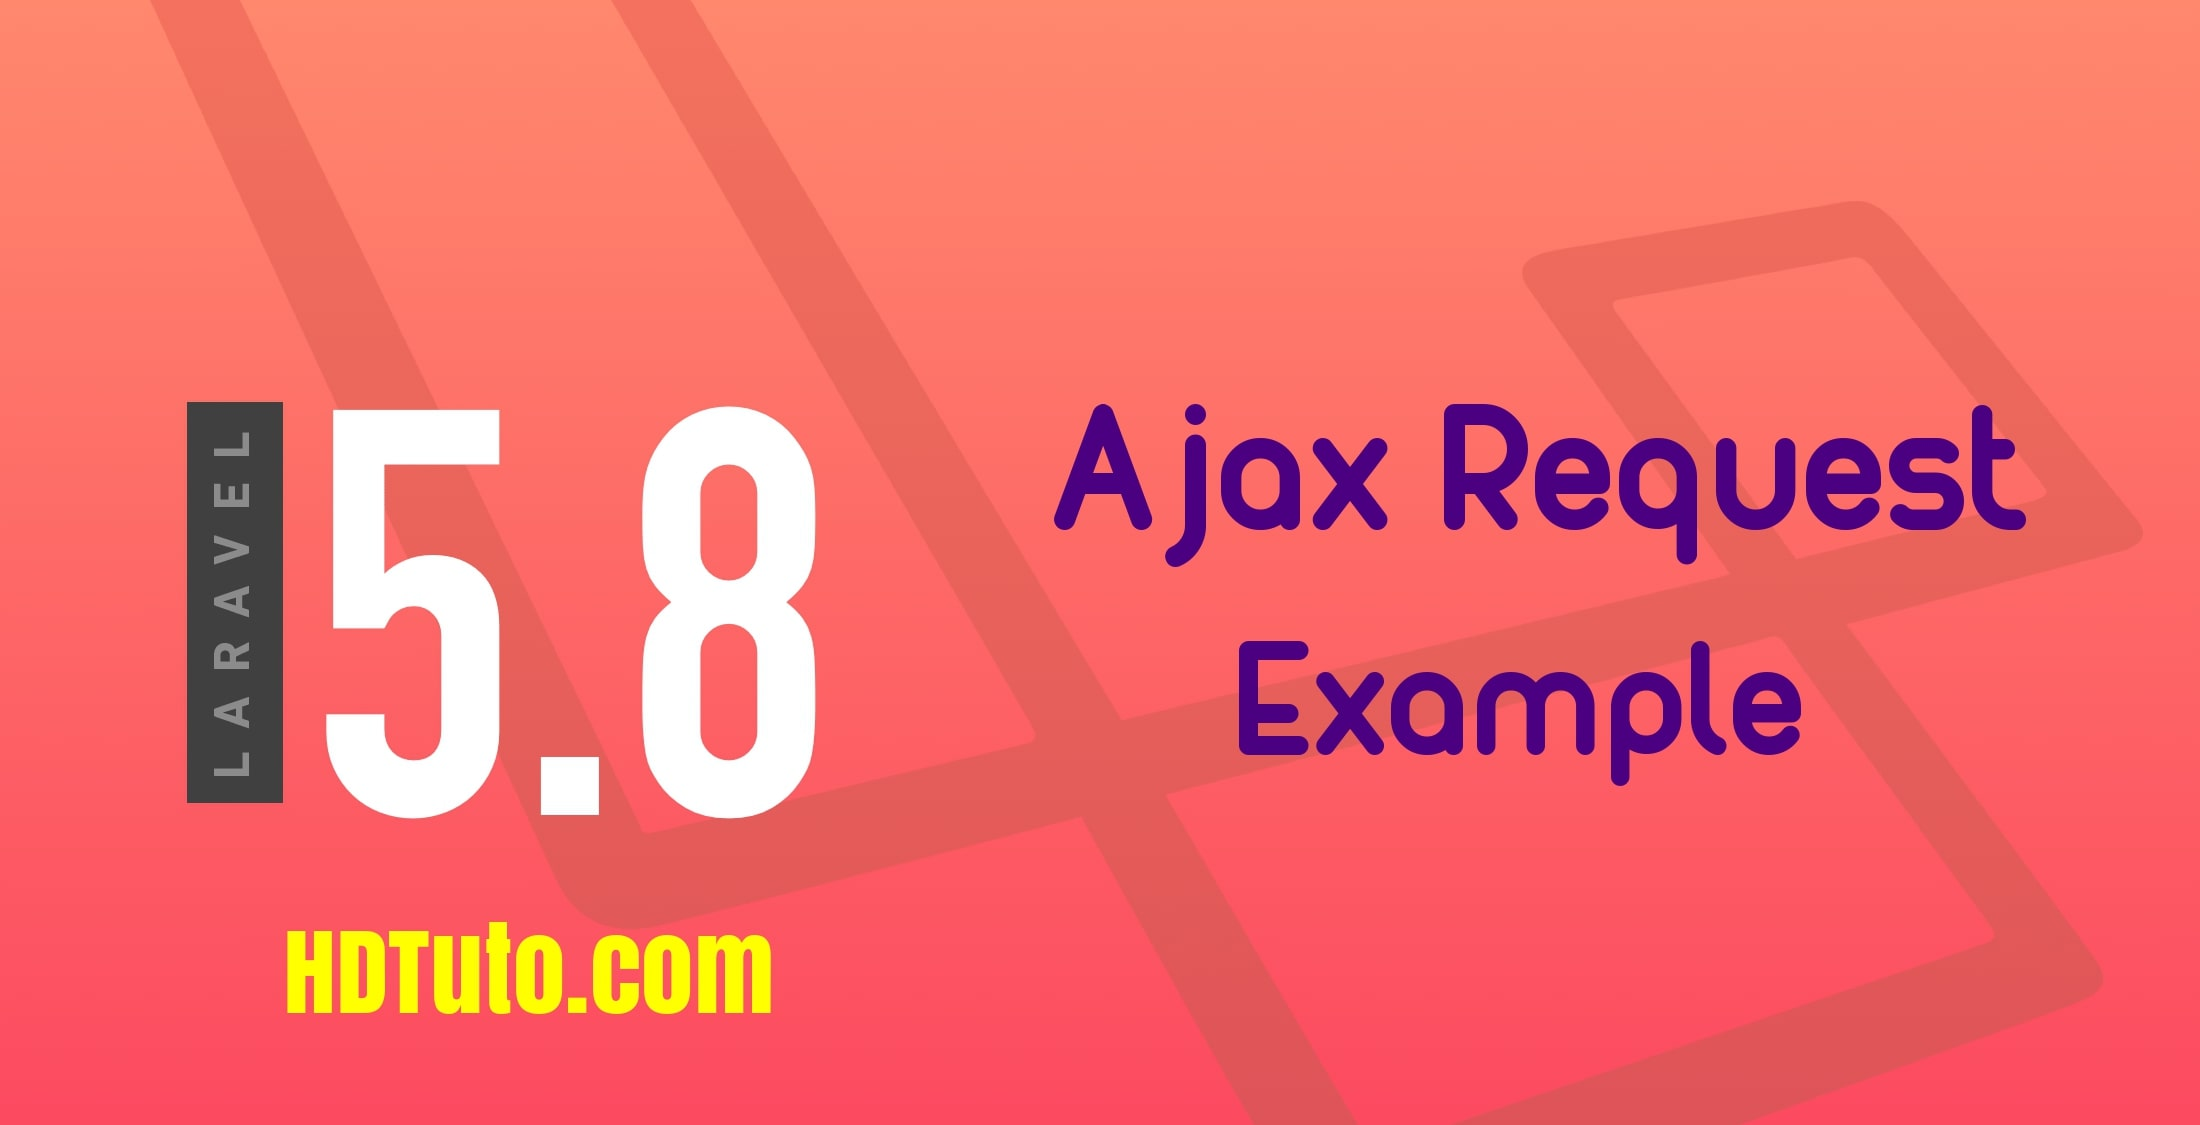 Laravel 5 8 Ajax Tutorial Example - HDTuto com